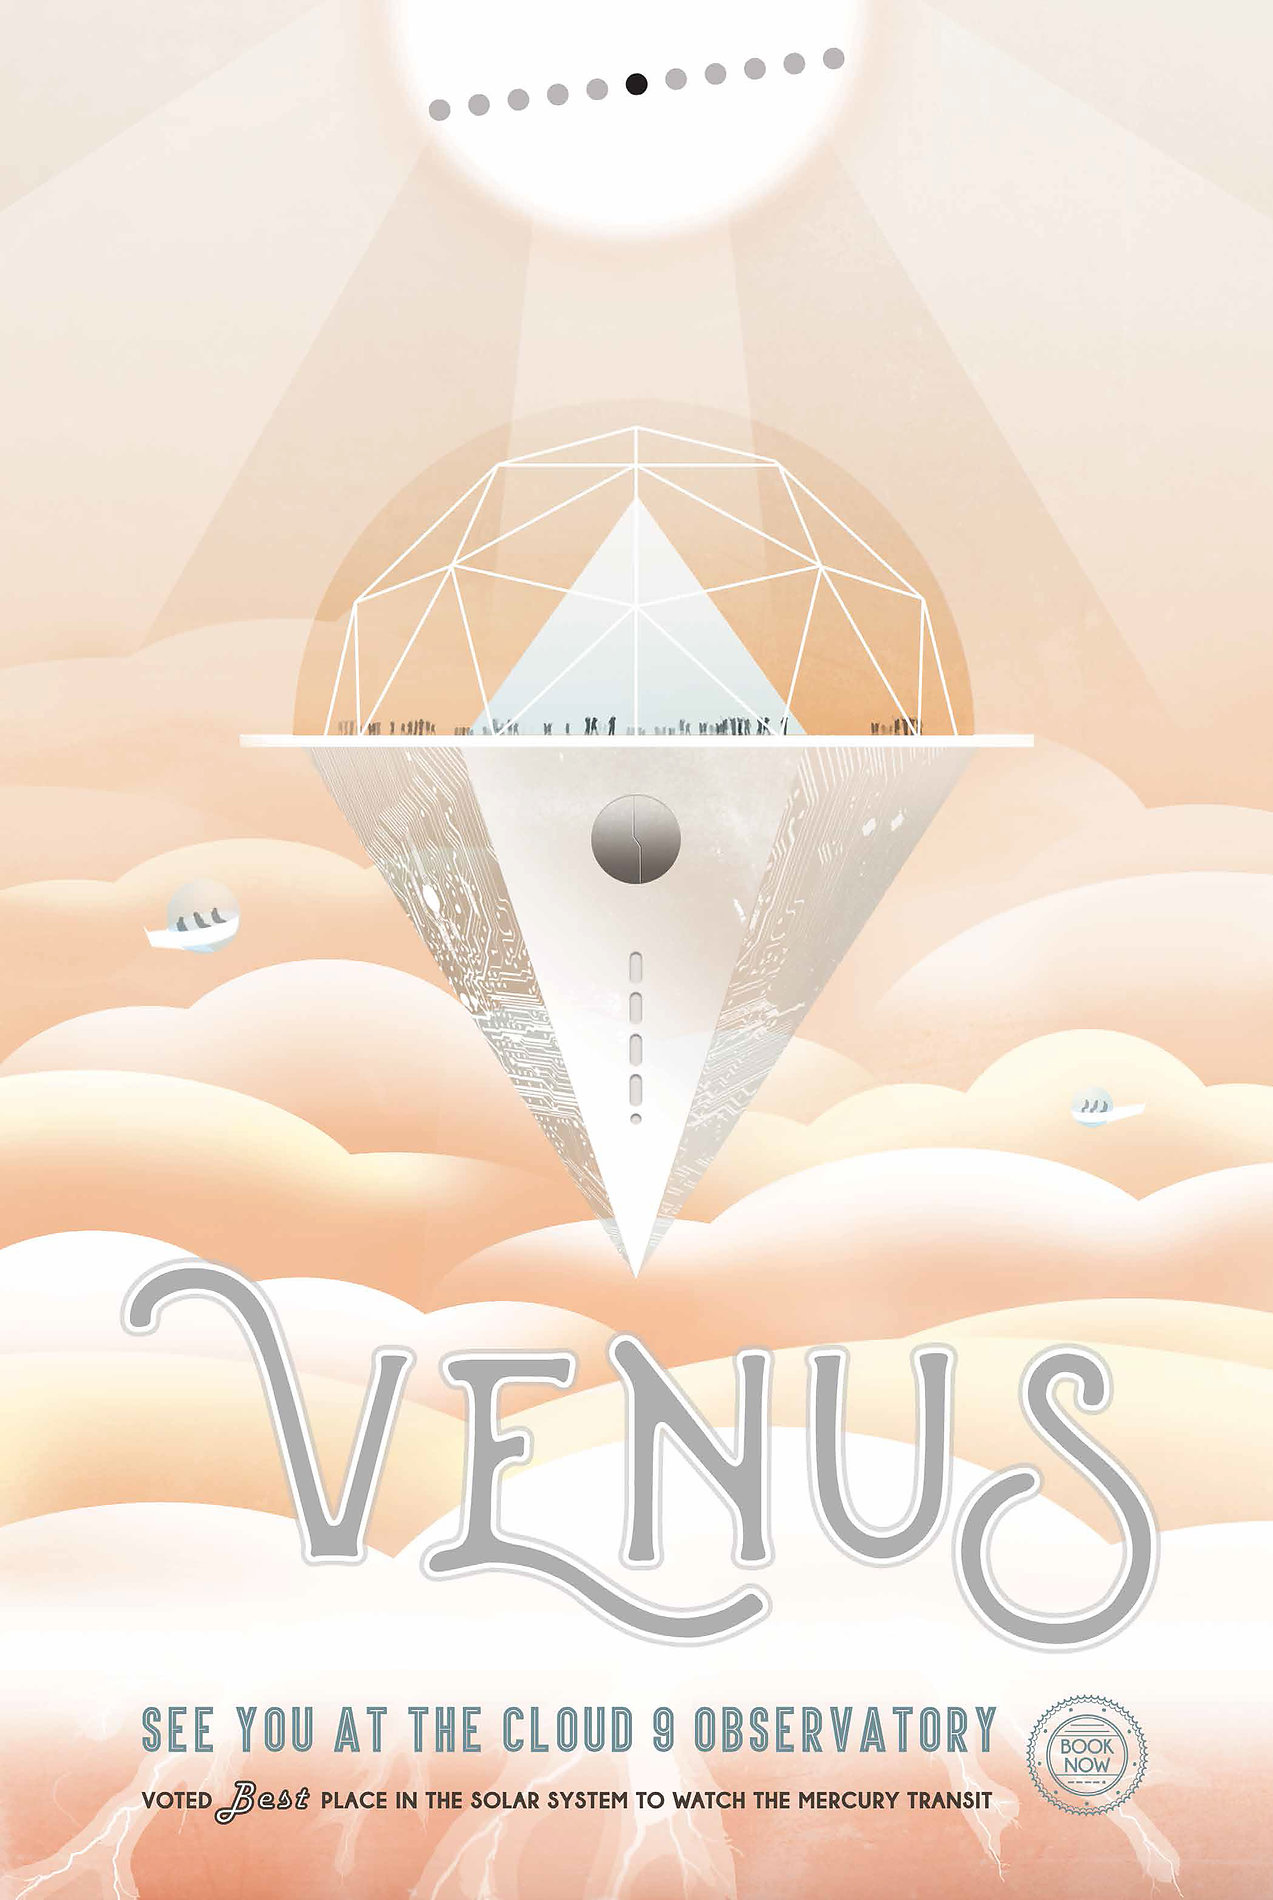 future spacetourism NASA Venus